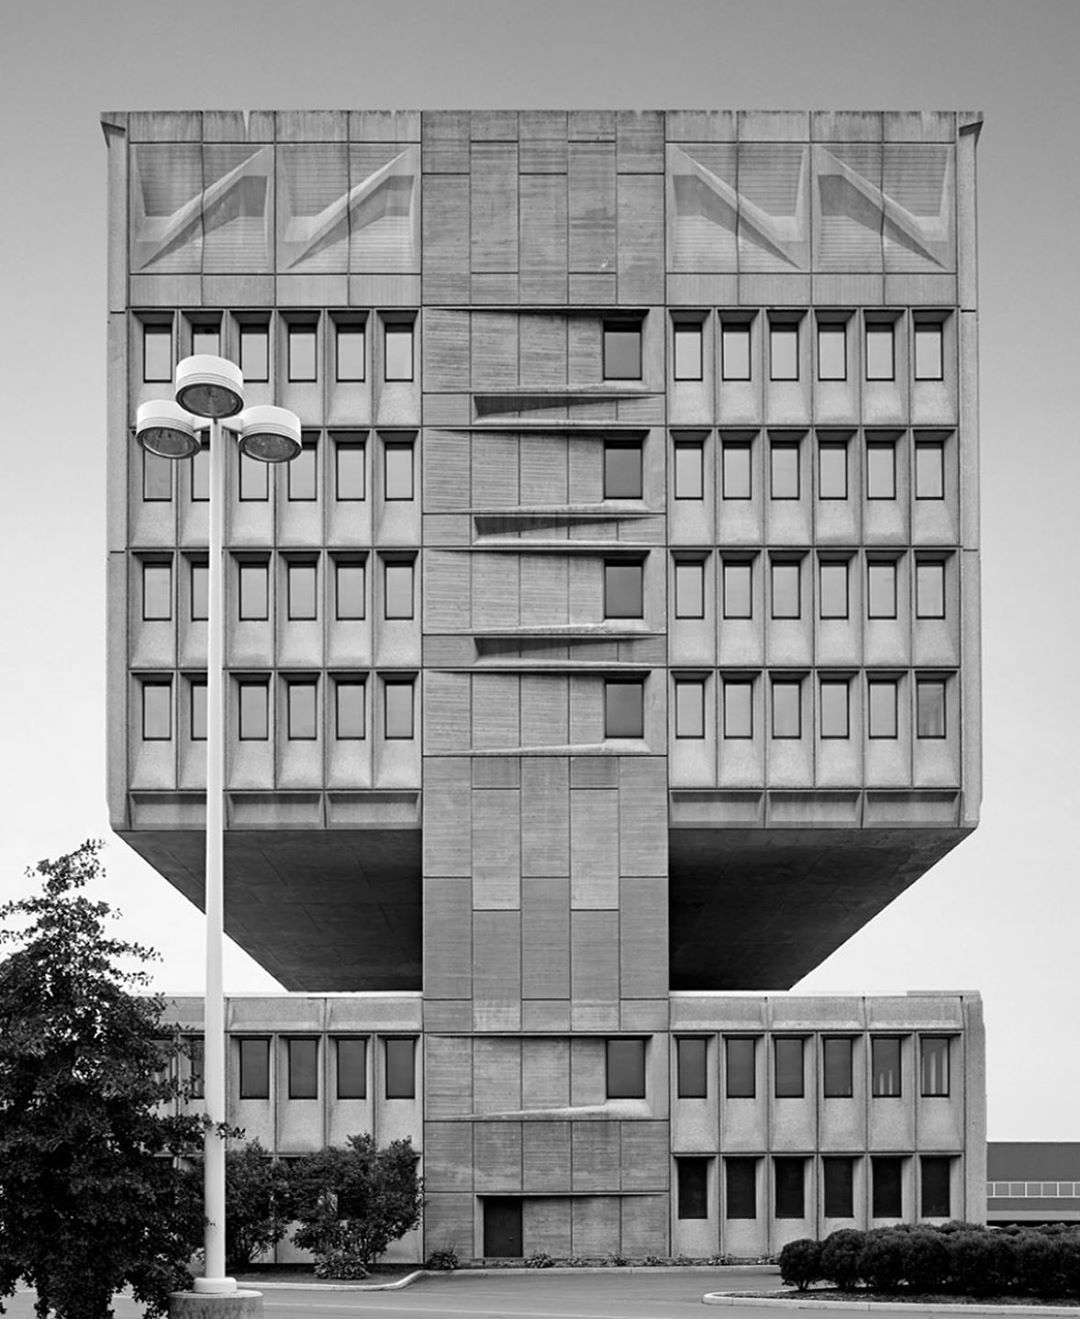 Mcm Daily On Instagram Located In New Haven Connecticut The Pirelli Tire Building Designed By Architect Marcel Breue Building Design Architect Pirelli Tires